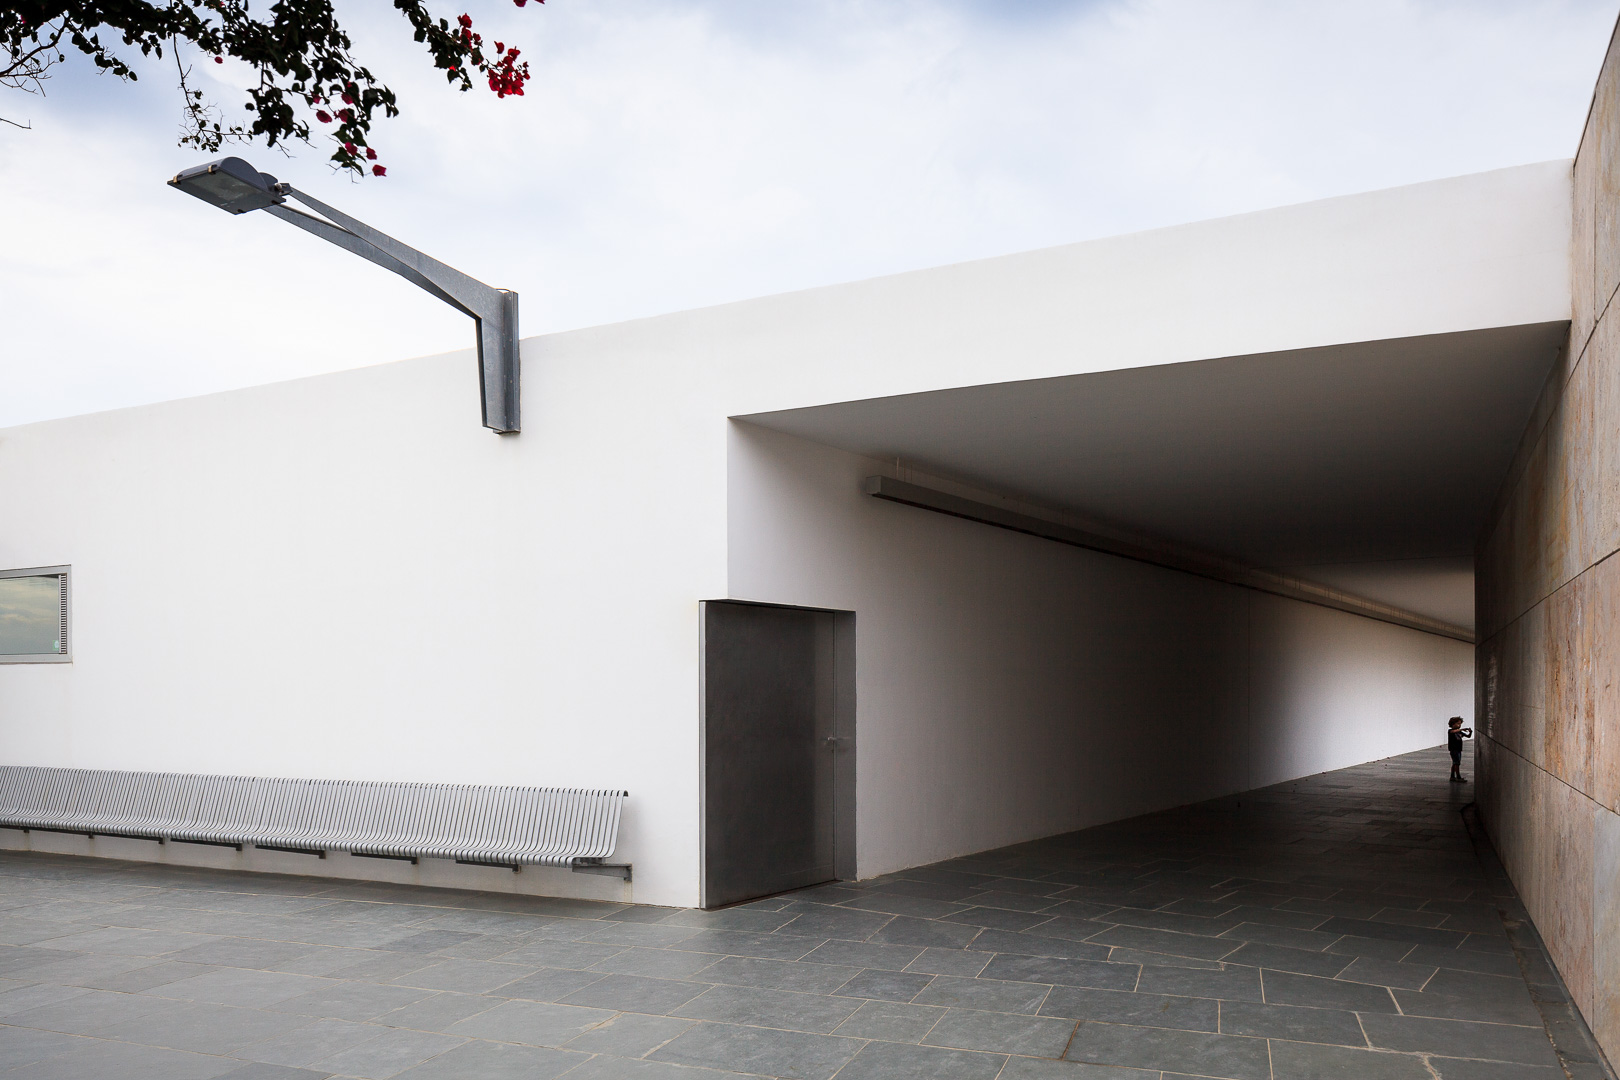 Courtyard of the Museum building of Baelo Claudia